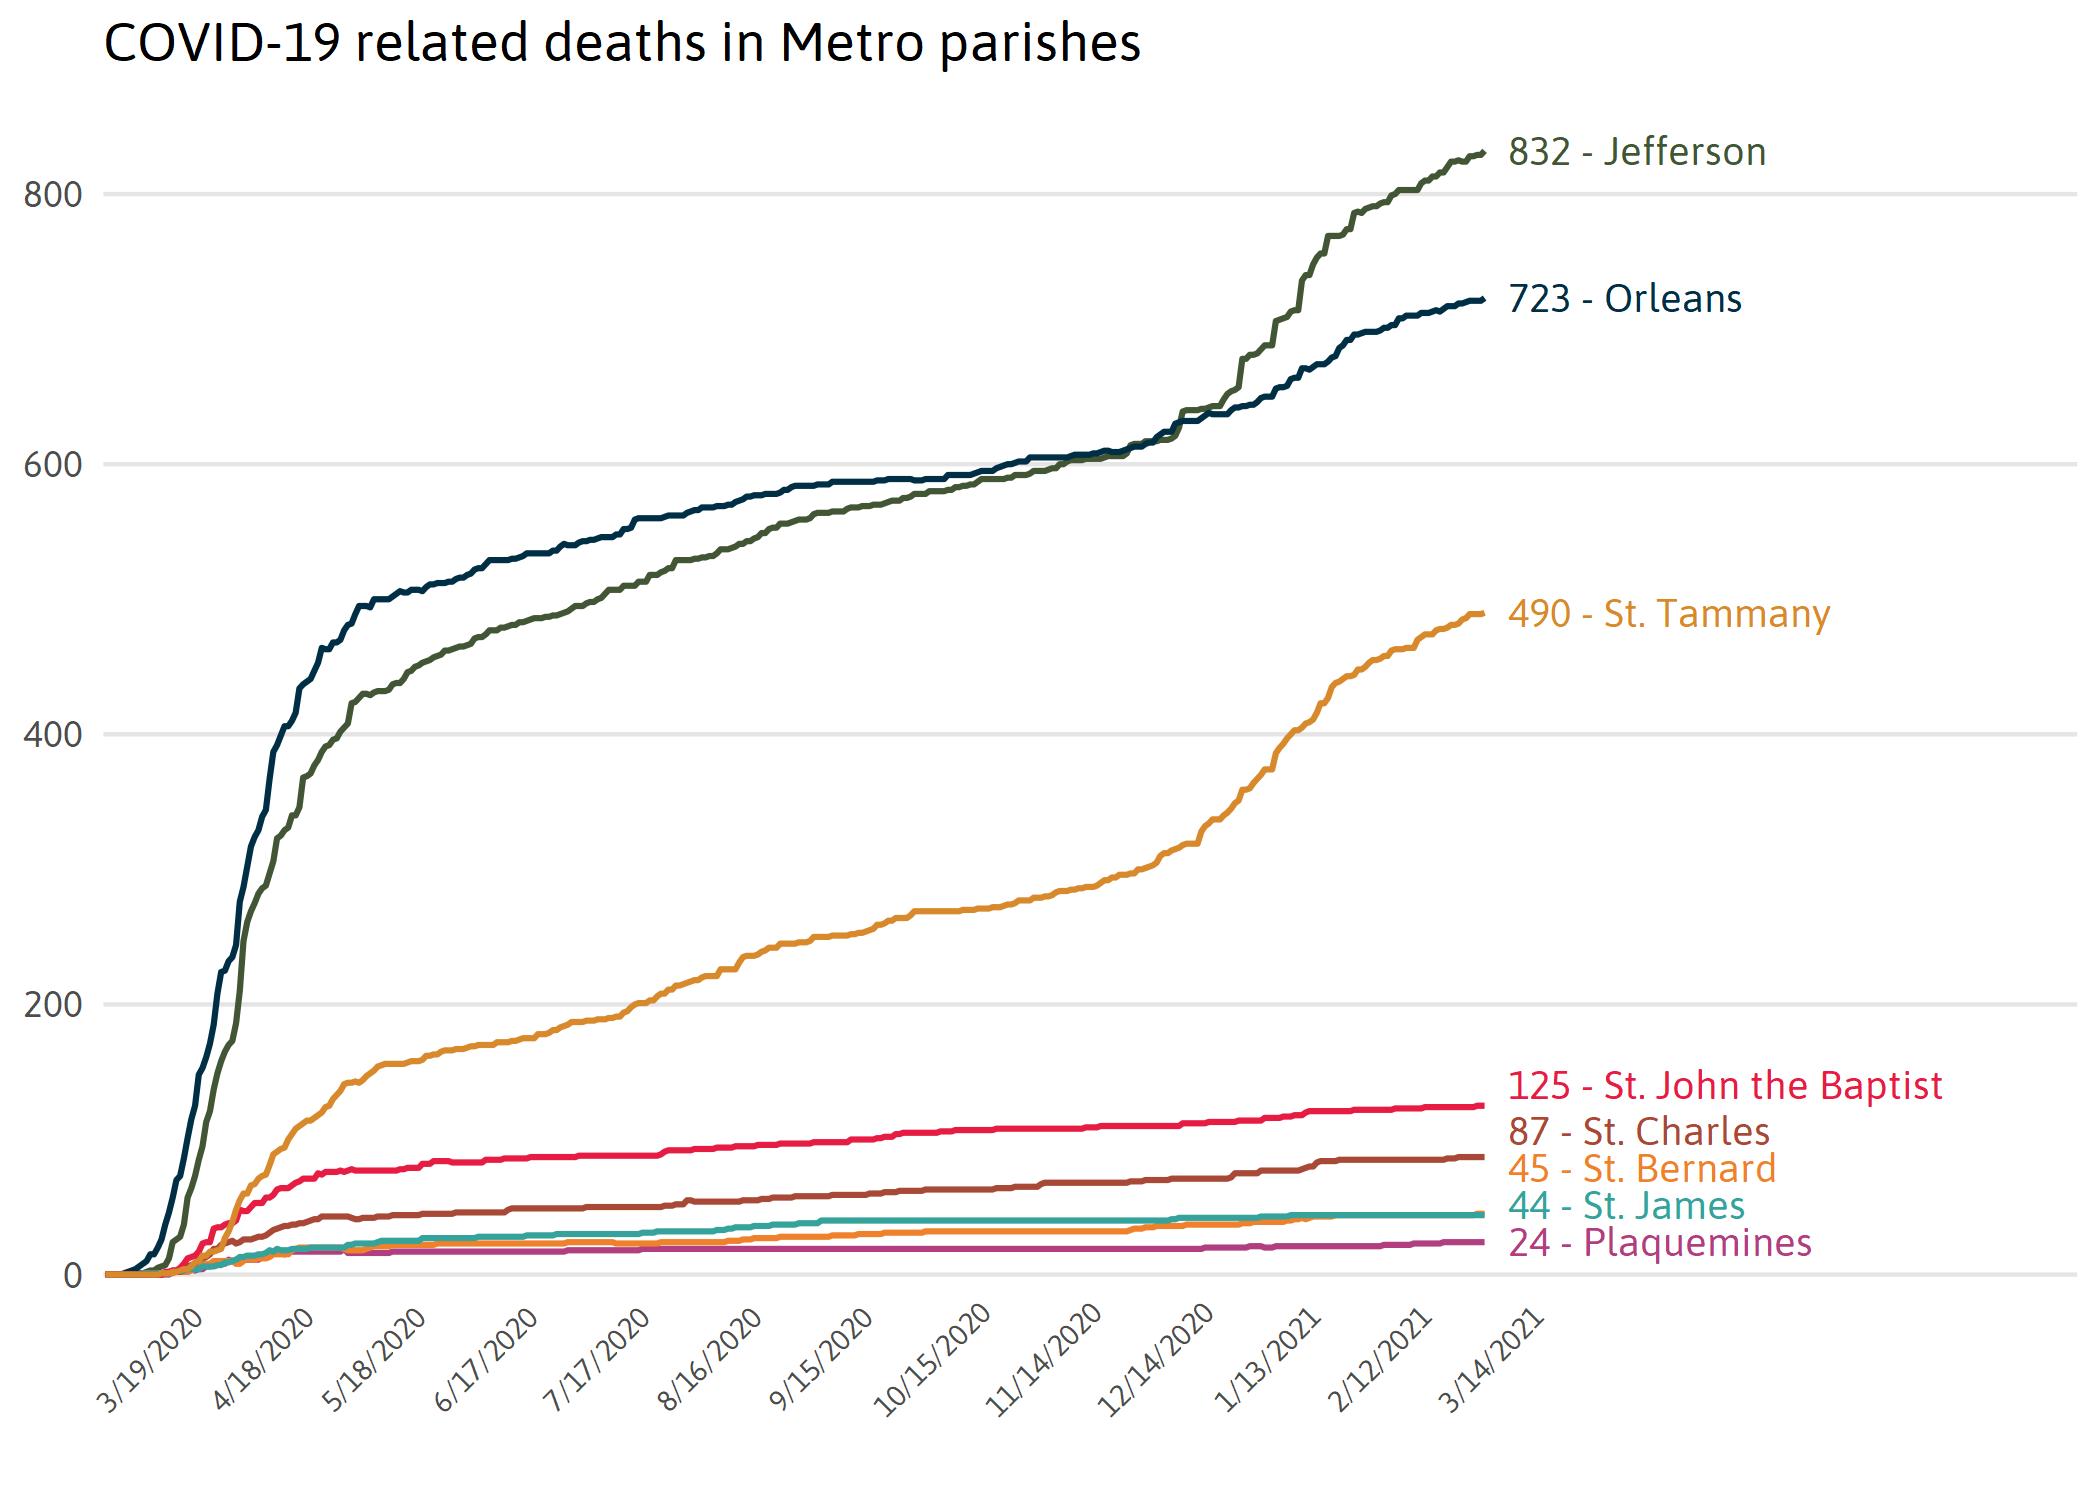 Deaths by Metro